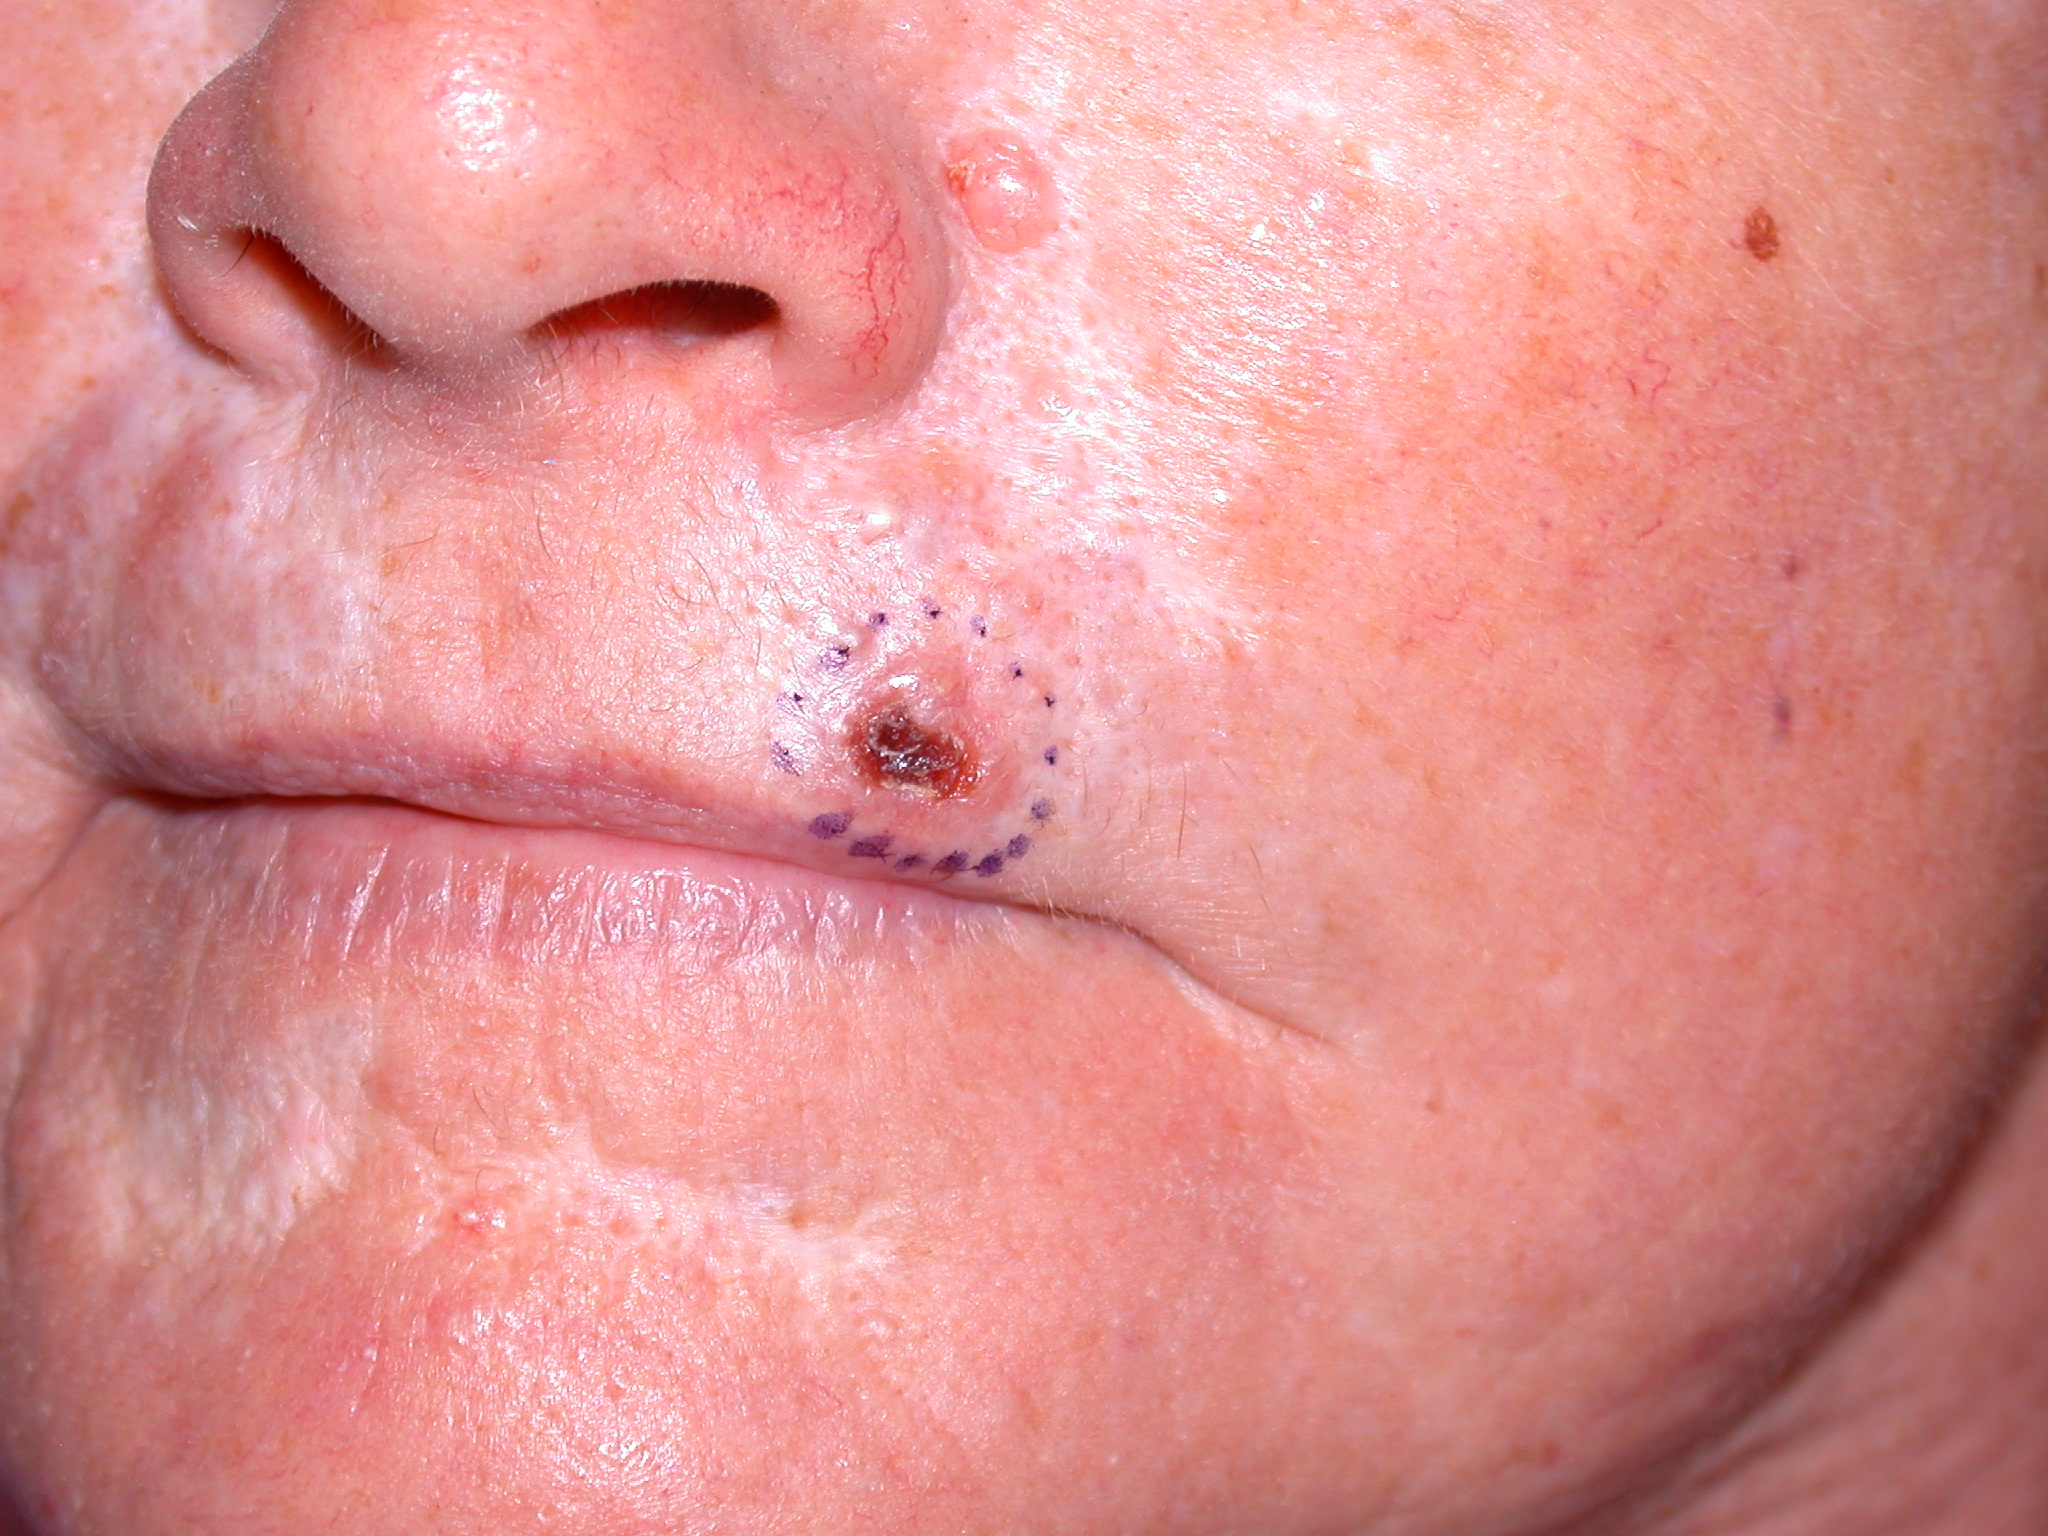 BCC on the lip – image reproduced with permission of Dr Chris Kearney